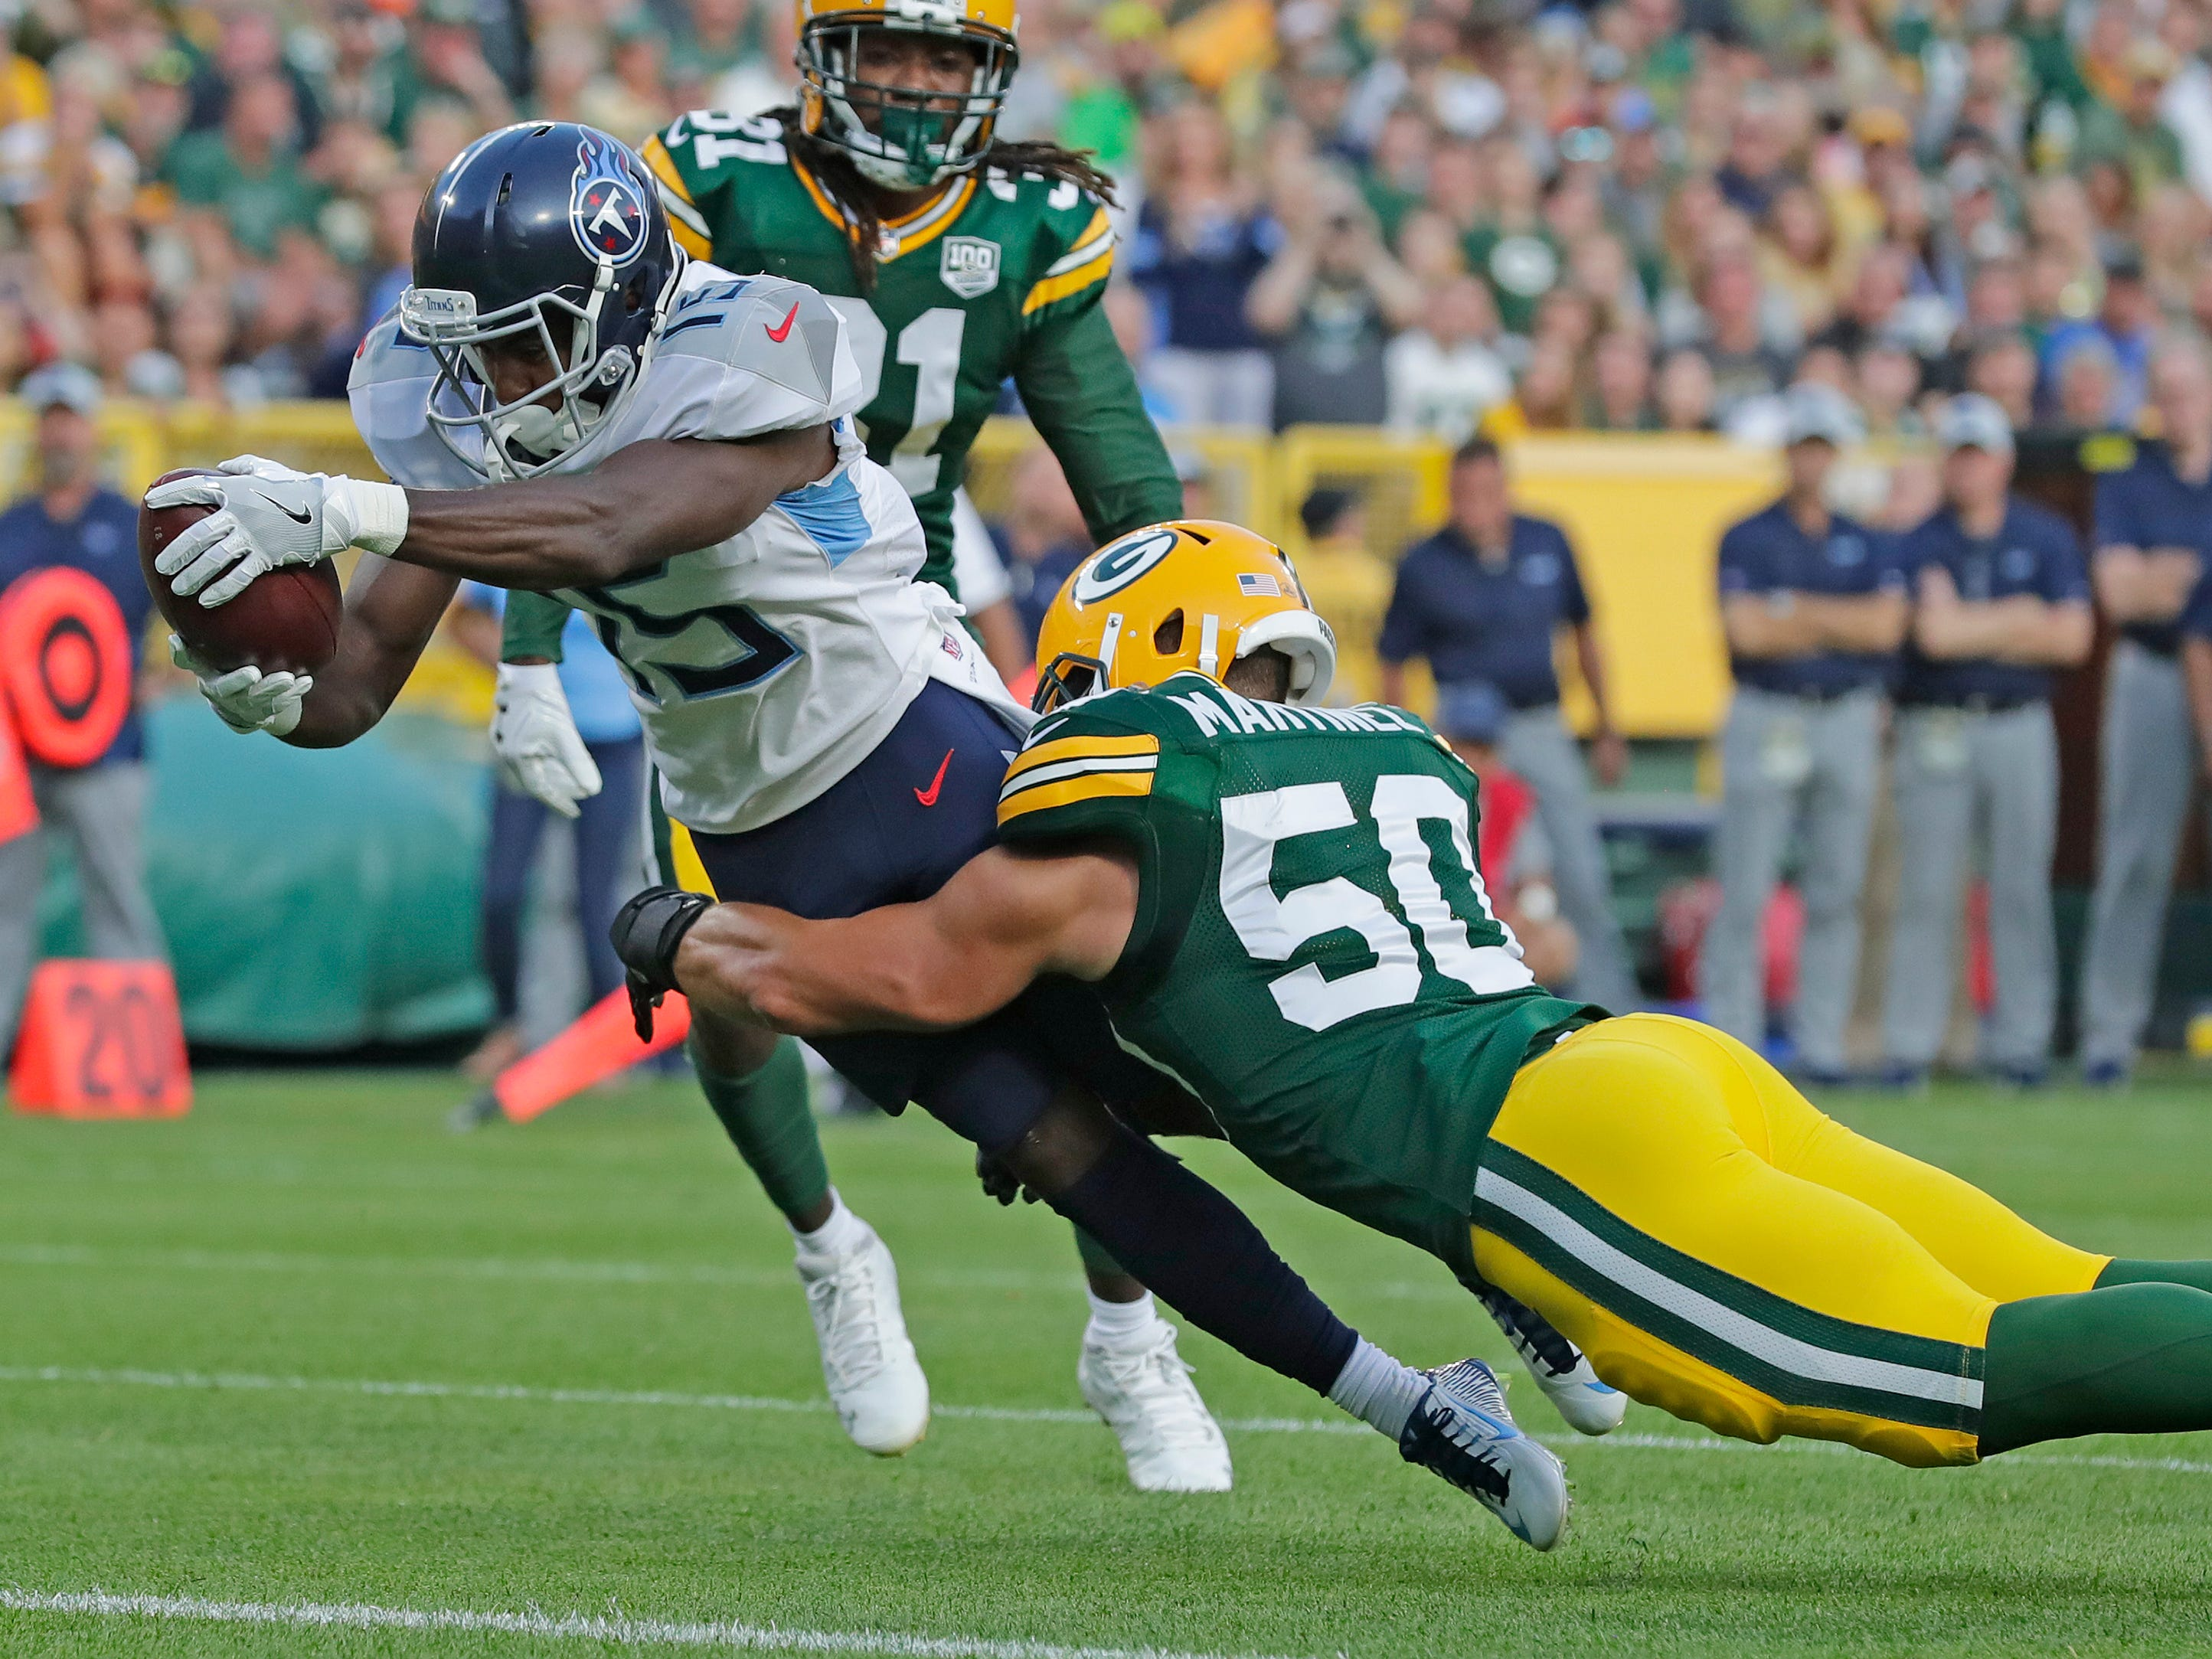 Tennessee Titans wide receiver Darius Jennings (15) scores a touchdown against Green Bay Packers linebacker Blake Martinez (50) in the first half of a NFL preseason game at Lambeau Field on Thursday, August 9, 2018 in Green Bay, Wis.